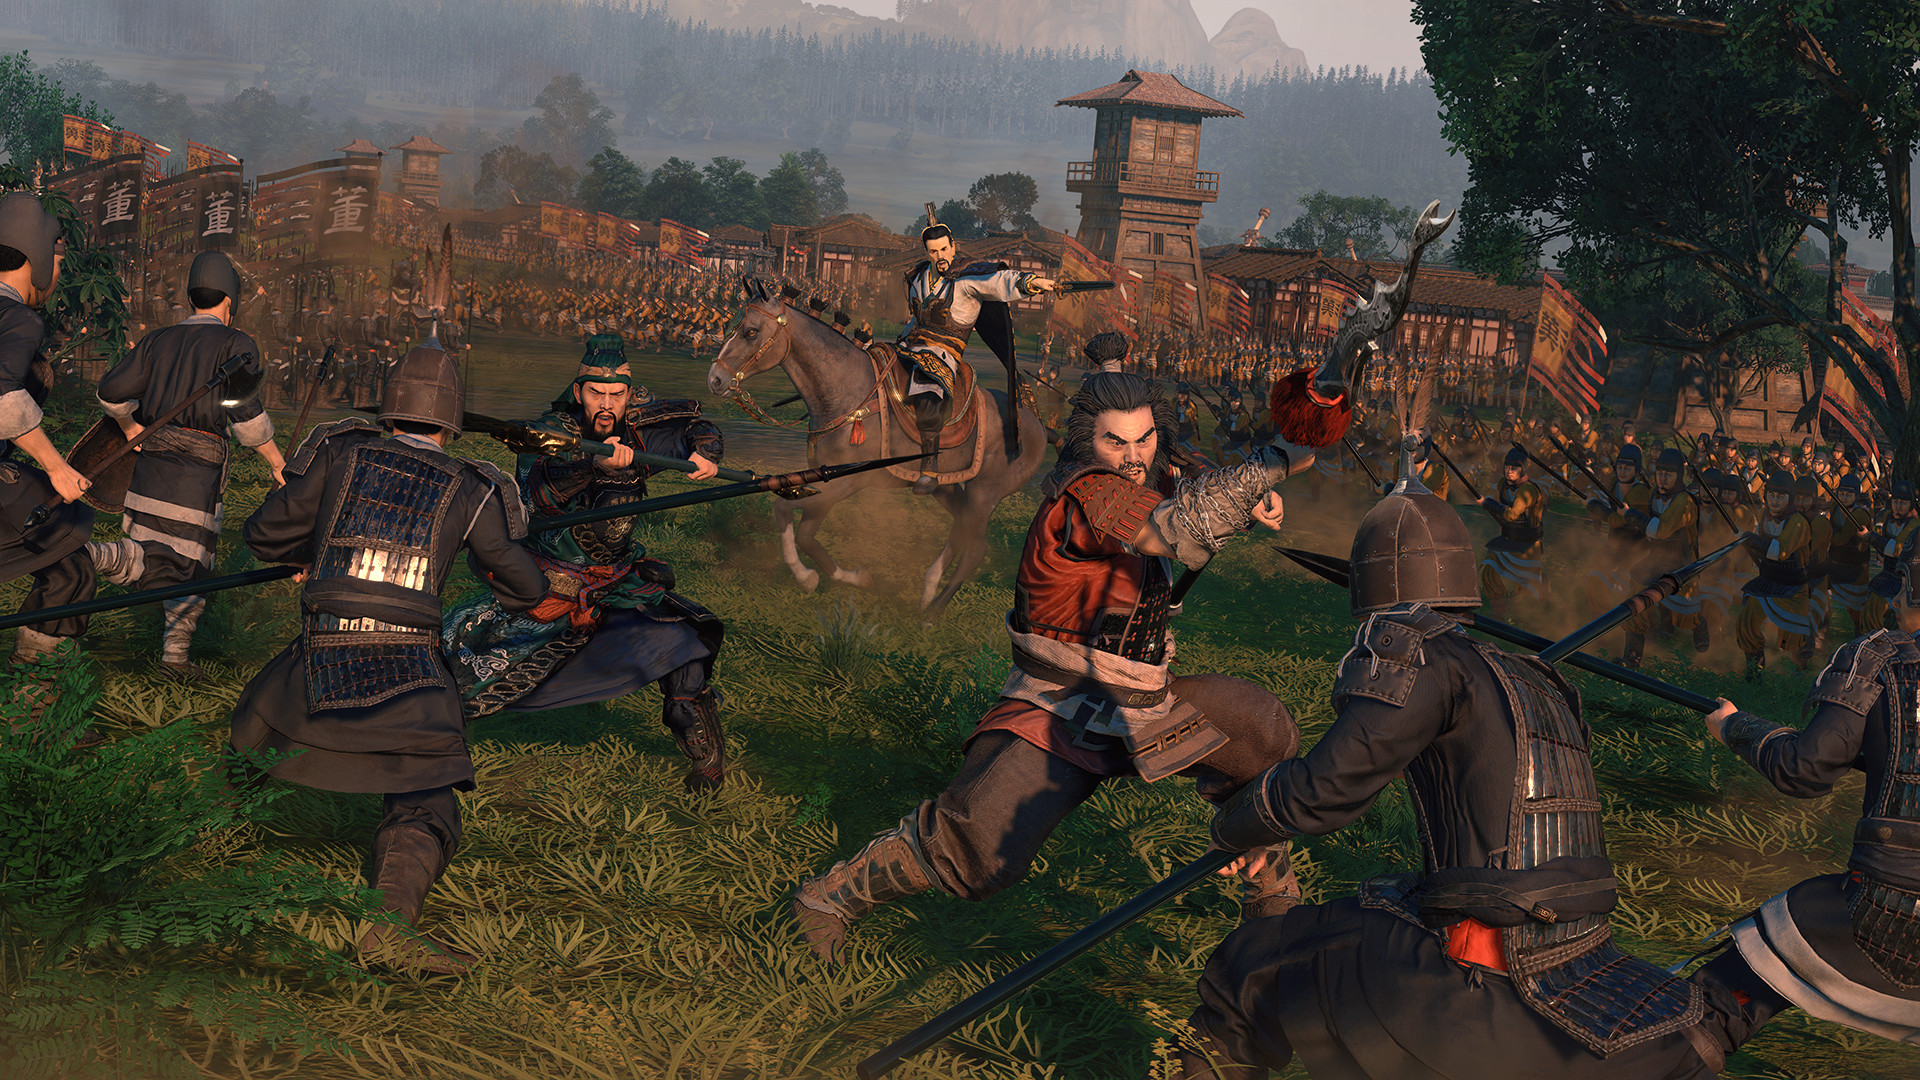 Total War: Three Kingdoms' Has Unveiled Their New Dynasty Mode, Fight Against A Massive Army With A Specialized Team Of Soldiers